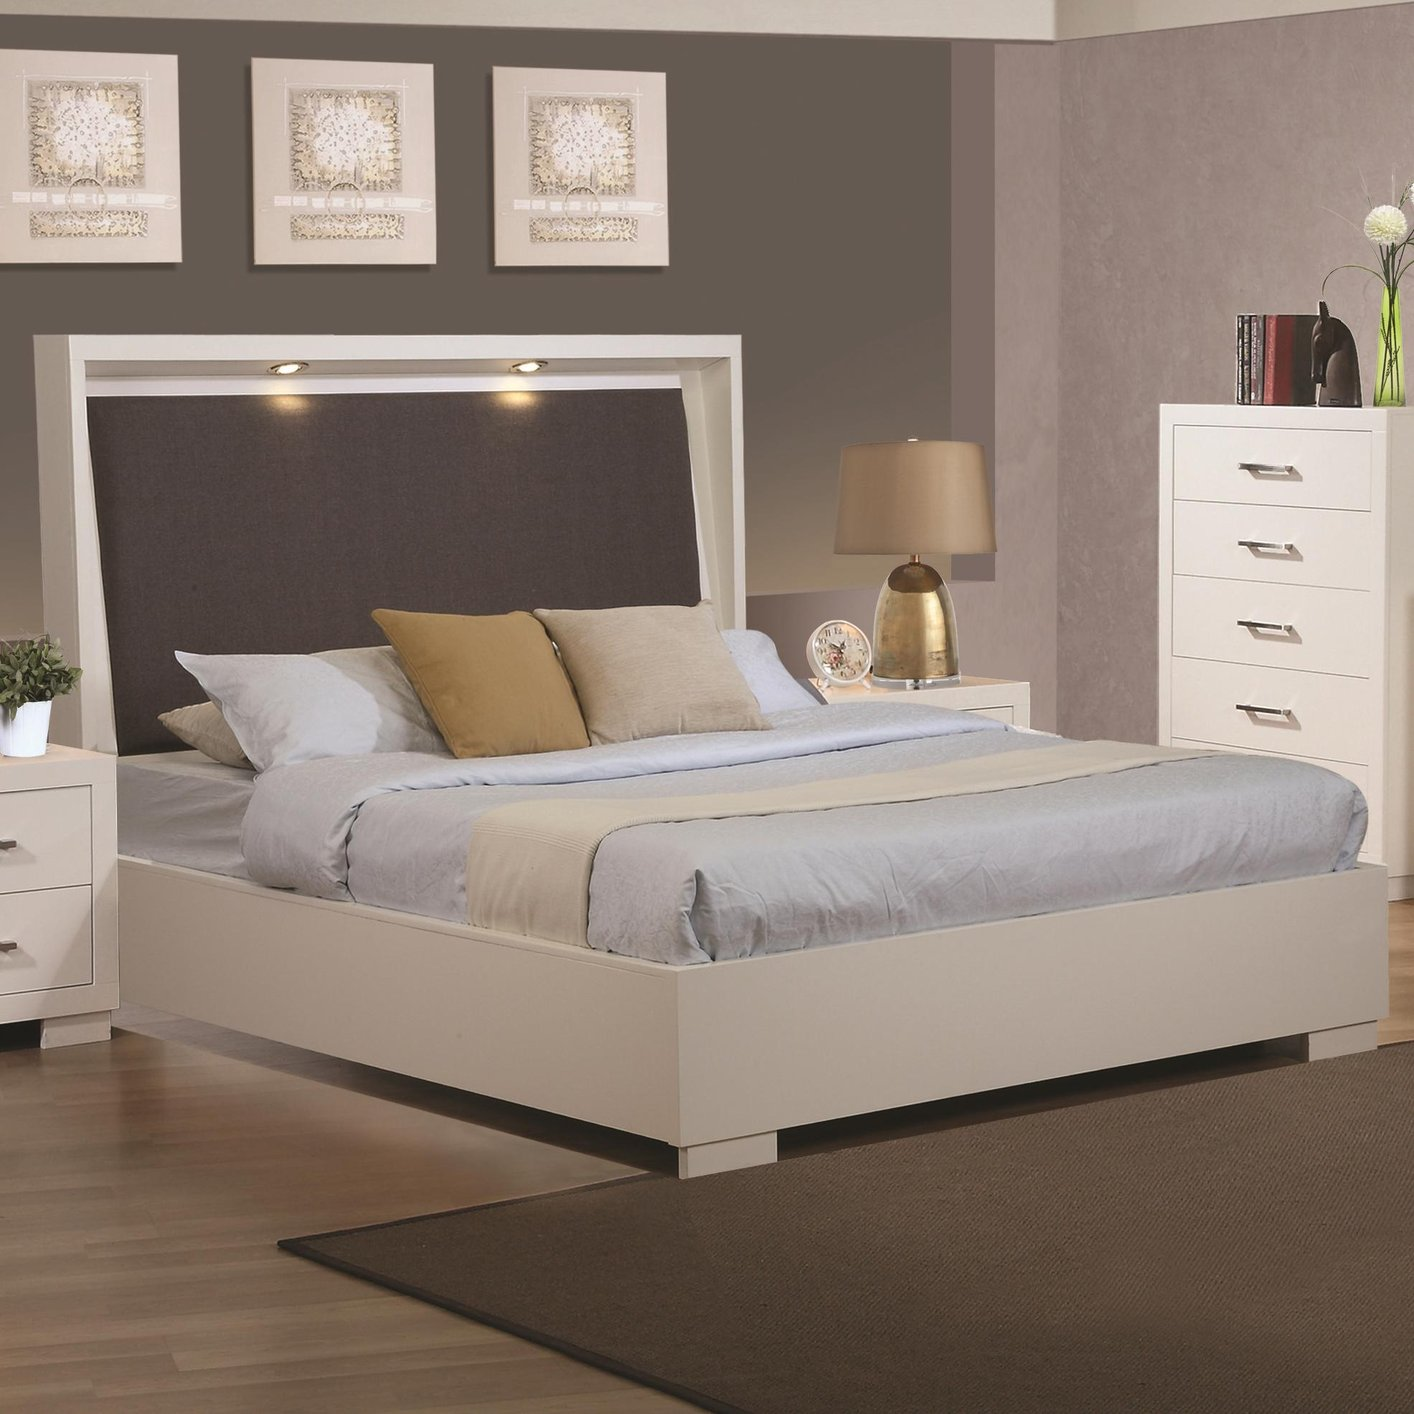 Coaster Kw White California King Size Wood Bed